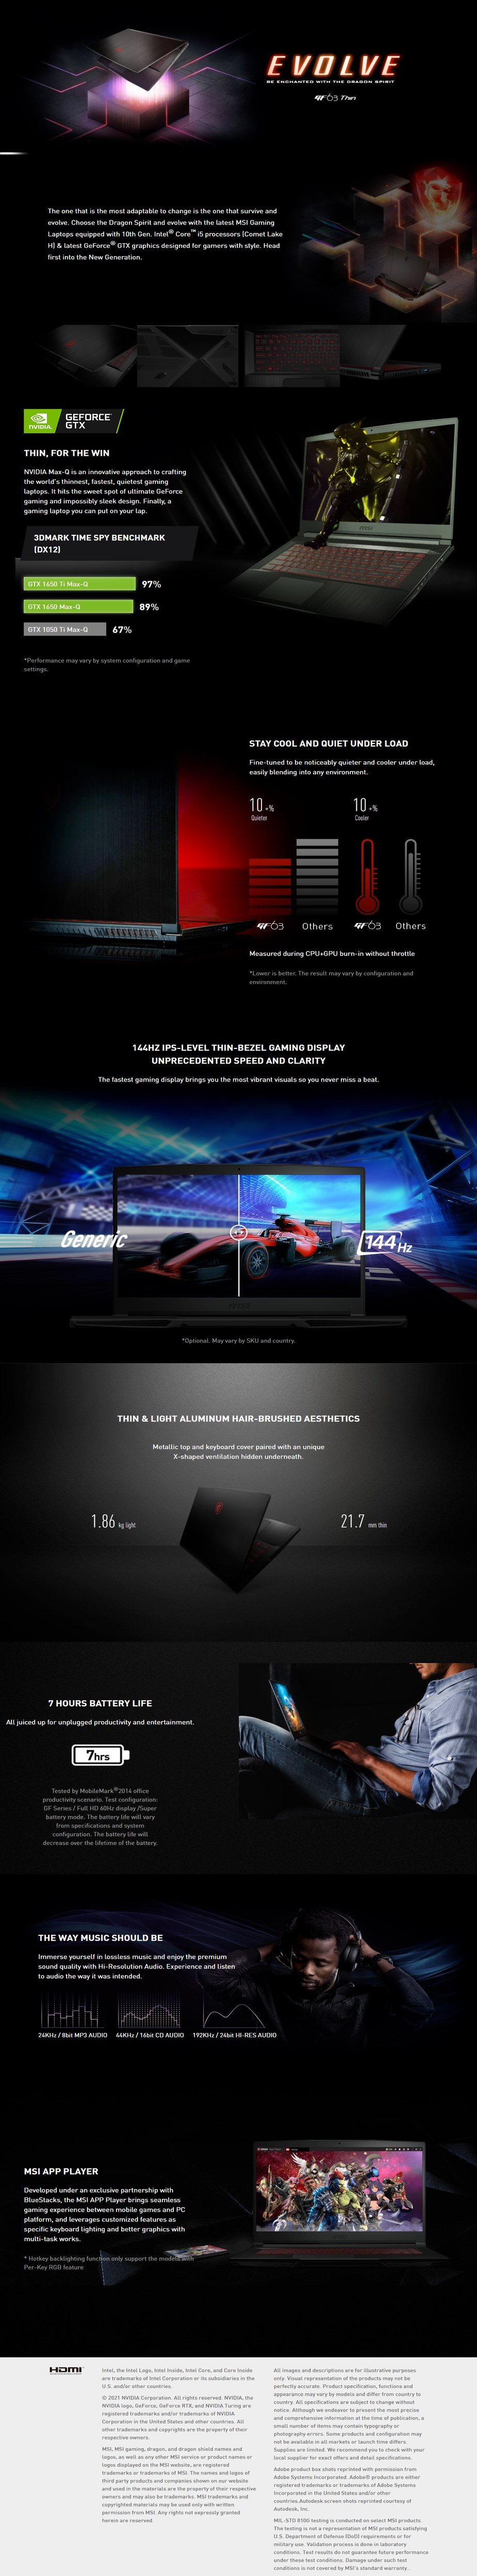 """A large marketing image providing additional information about the product MSI GF63 Thin 10SC 15.6"""" i5 10th Gen GTX 1650 Windows 10 Home Gaming Notebook  - Additional alt info not provided"""